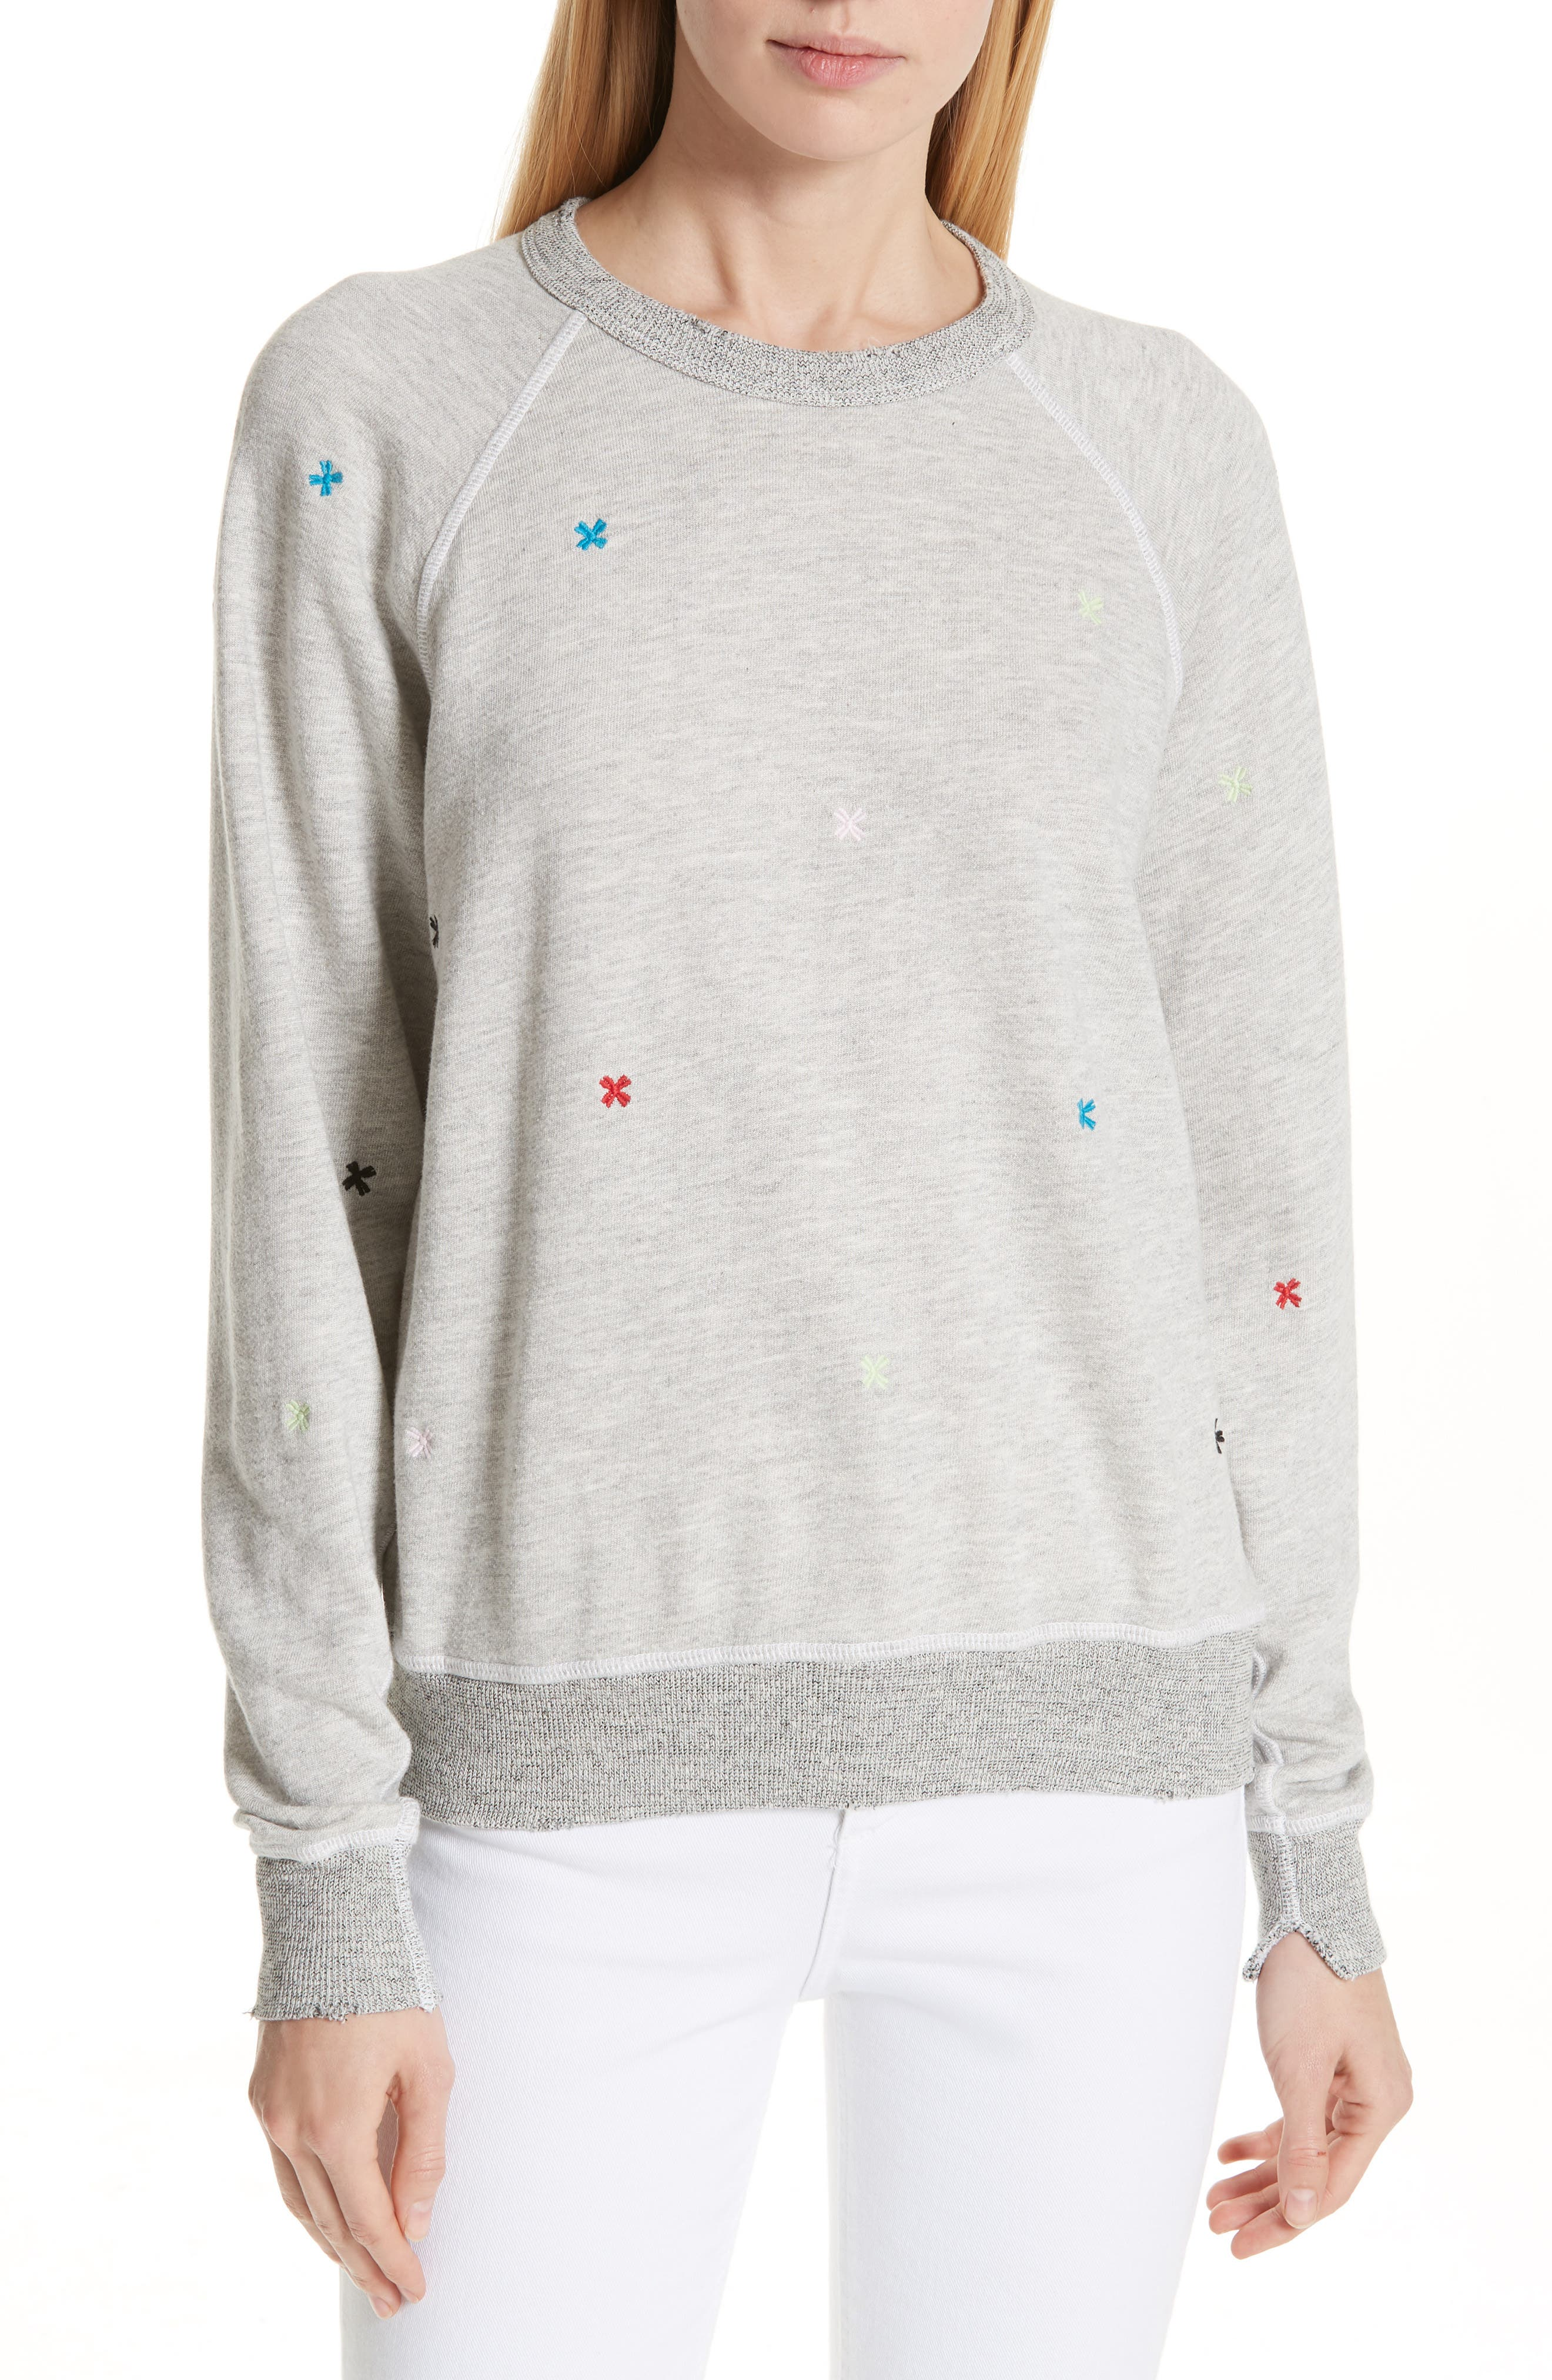 The College Embroidered Sweatshirt,                             Main thumbnail 1, color,                             HEATHER GREY/ MULTI